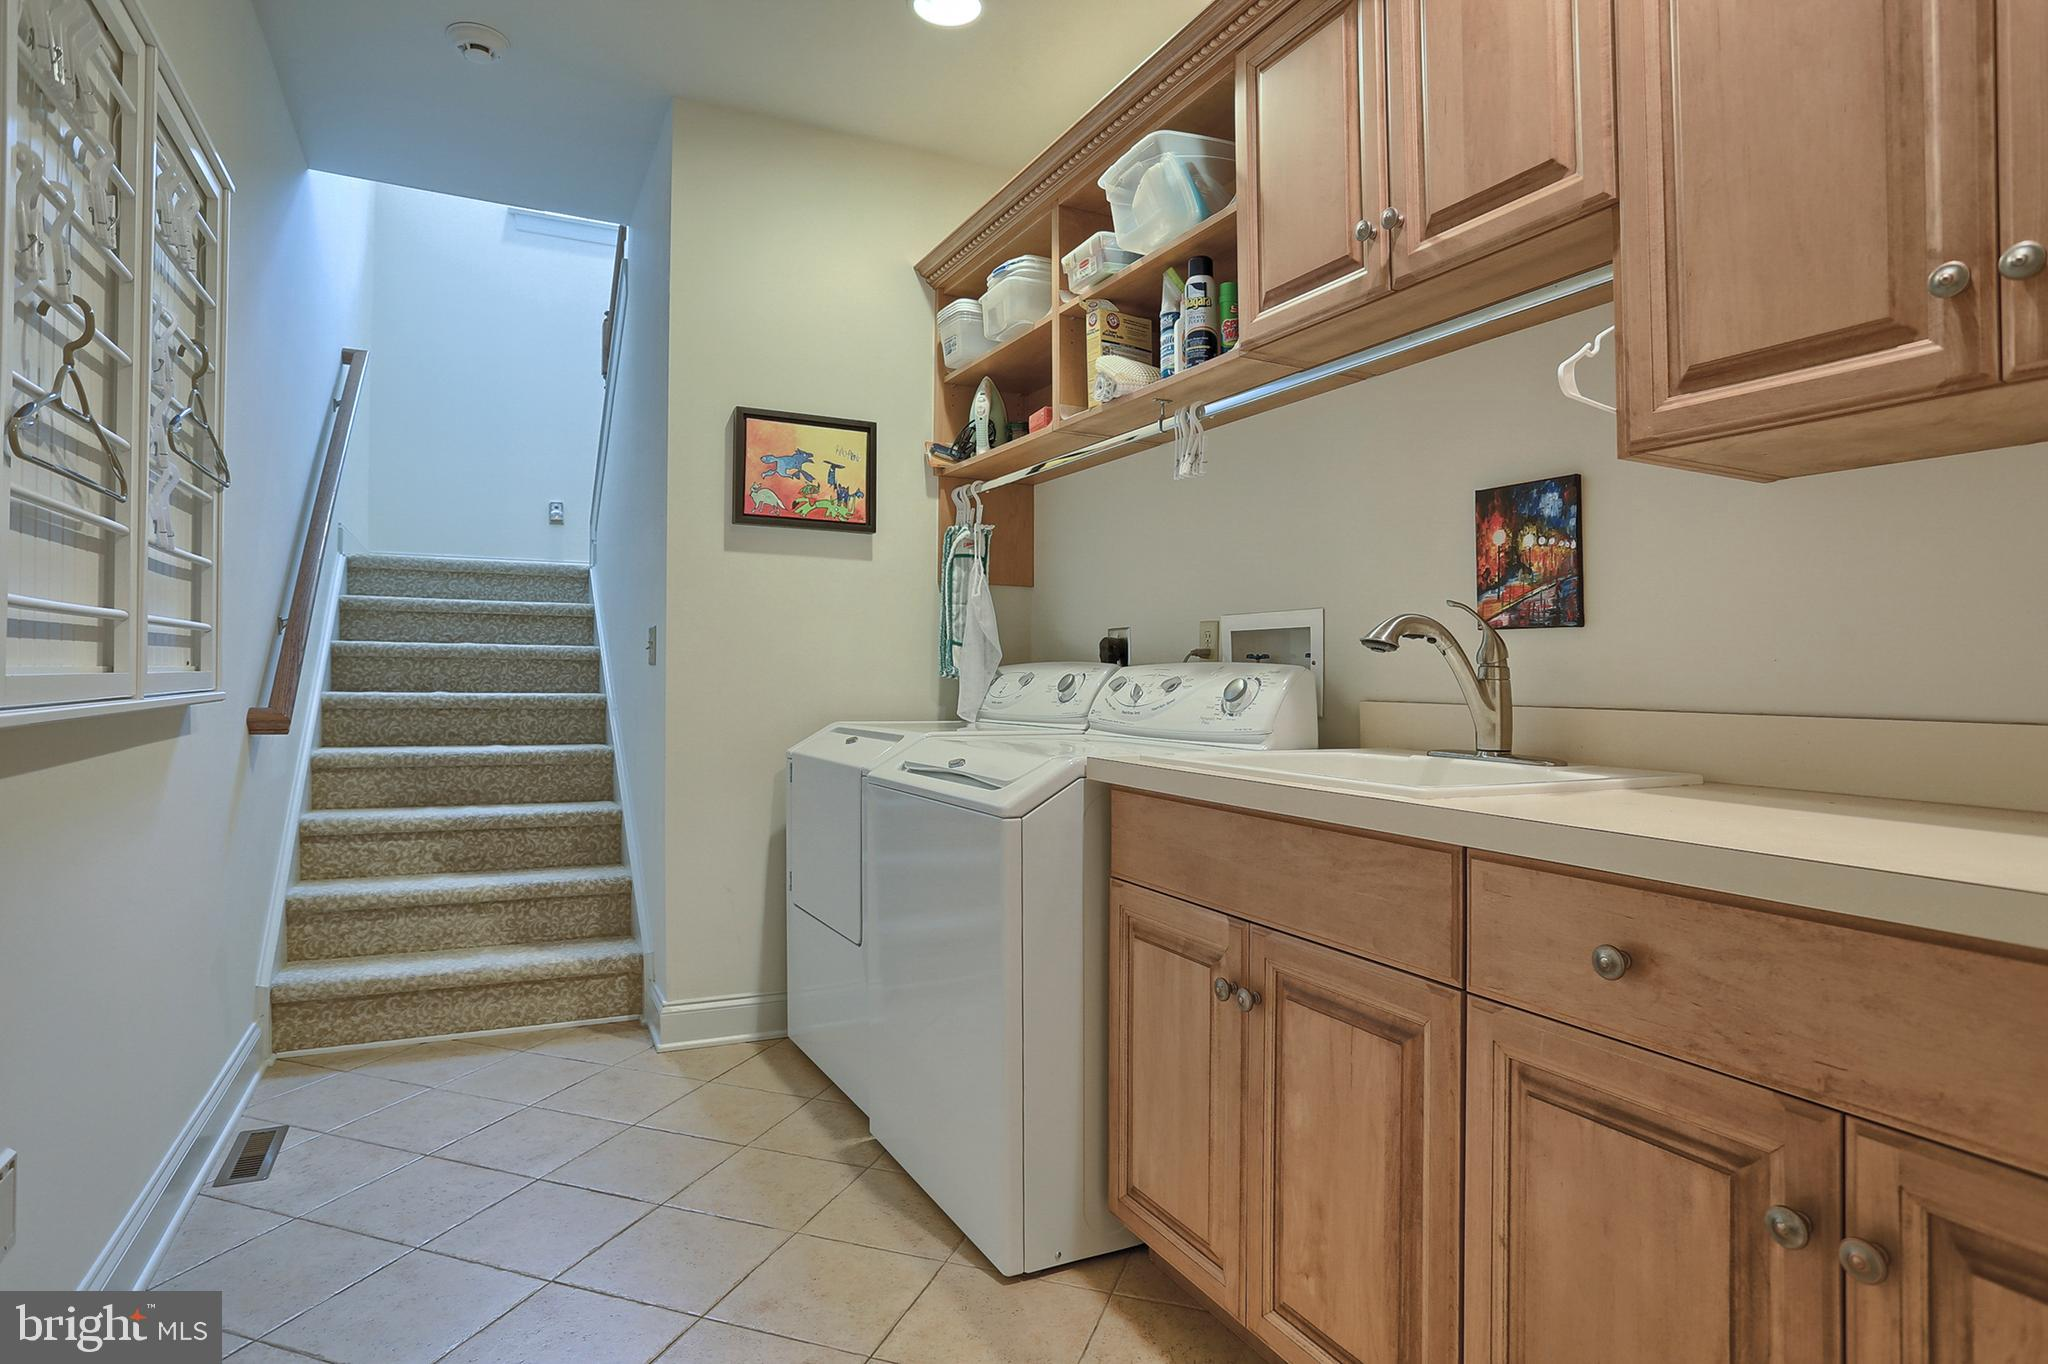 Laundry Room - Stairs to 2nd floor